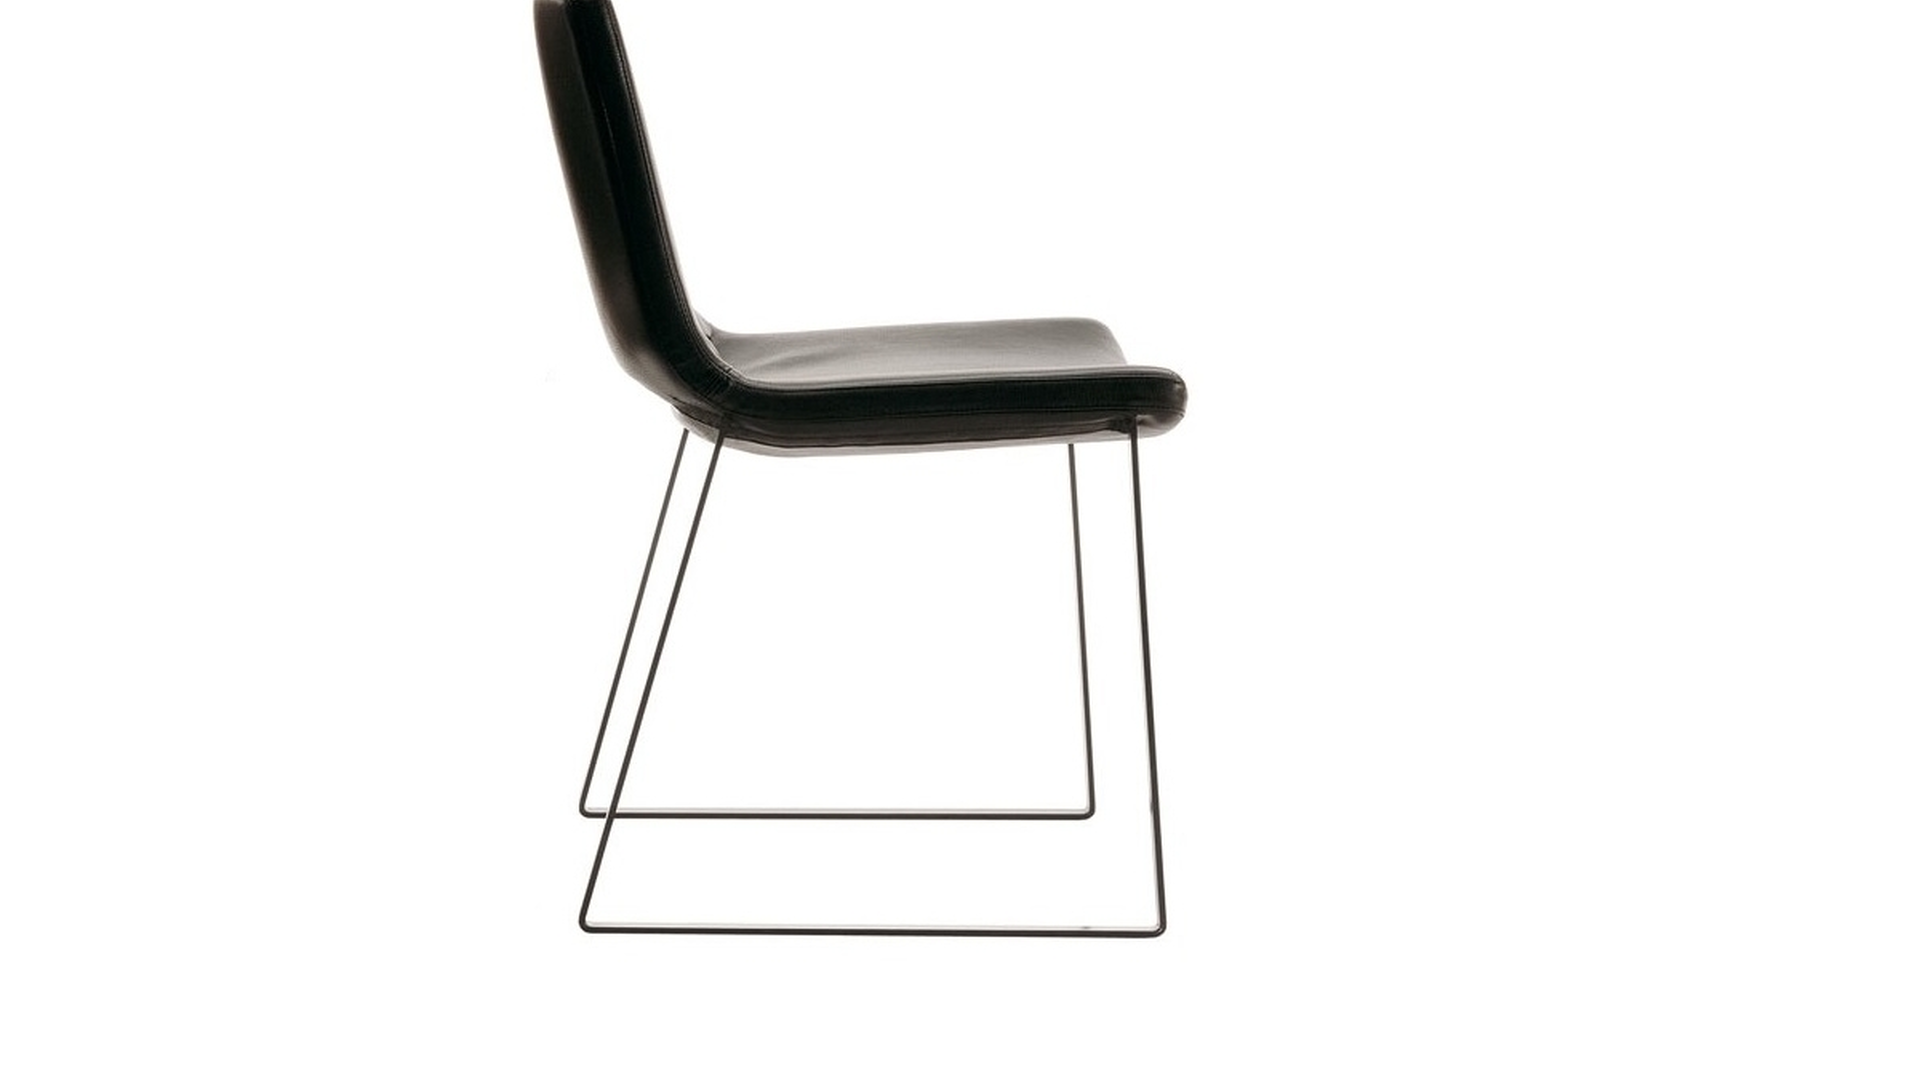 Chair slide base2.png